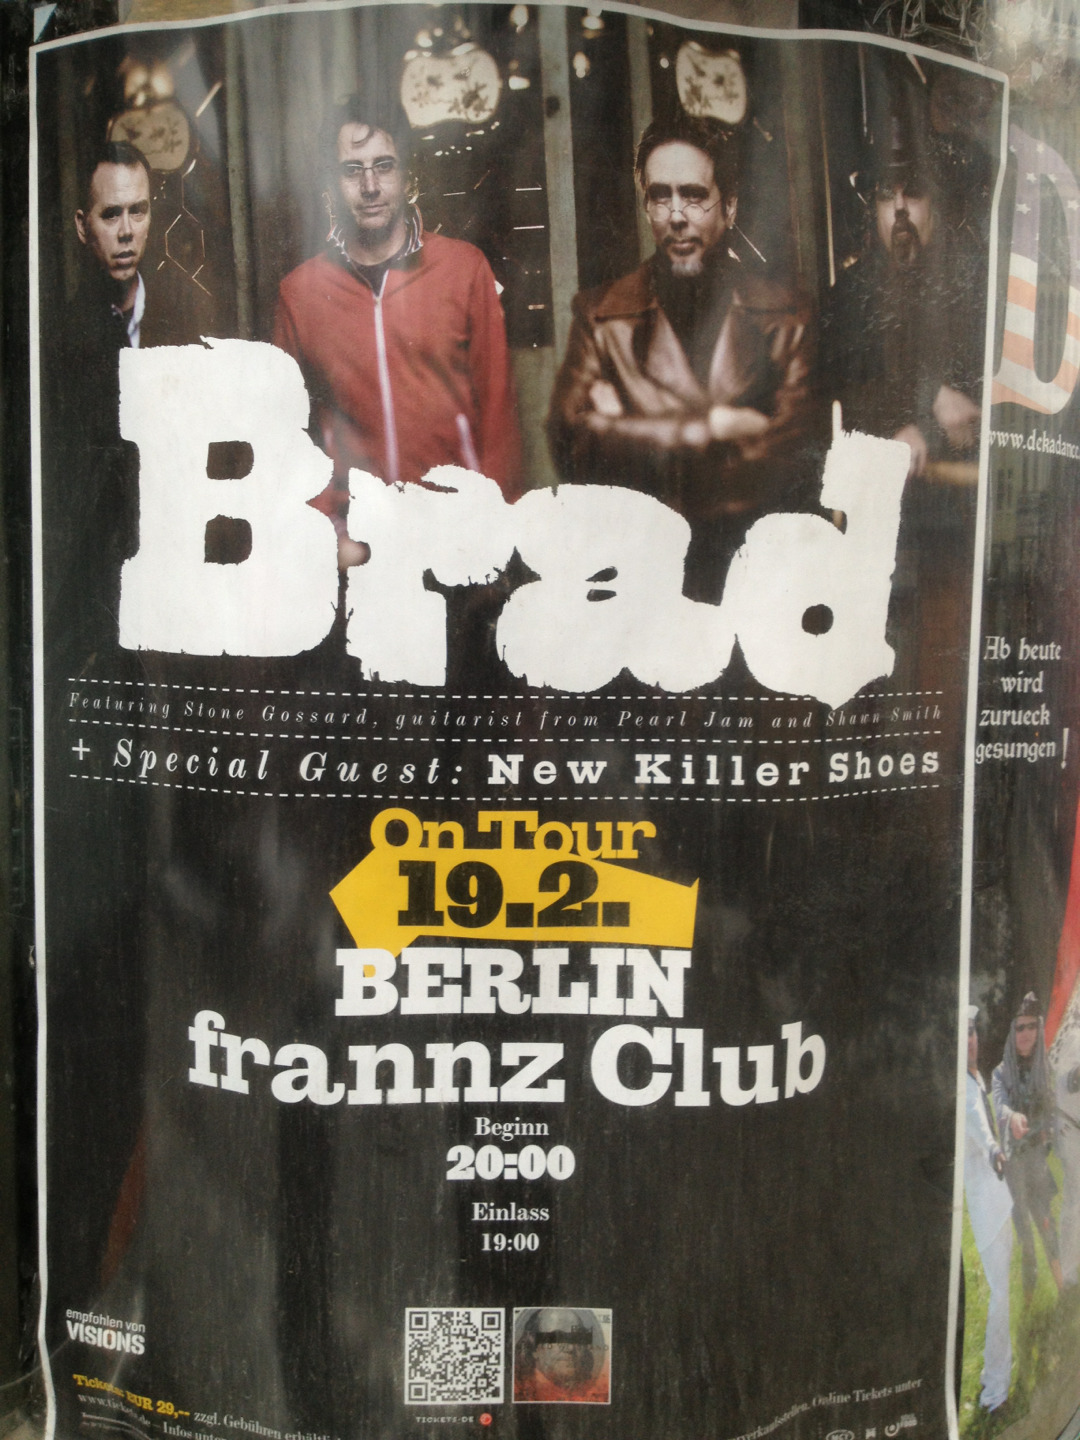 Join us at Frannz Club, Berlin tonight.